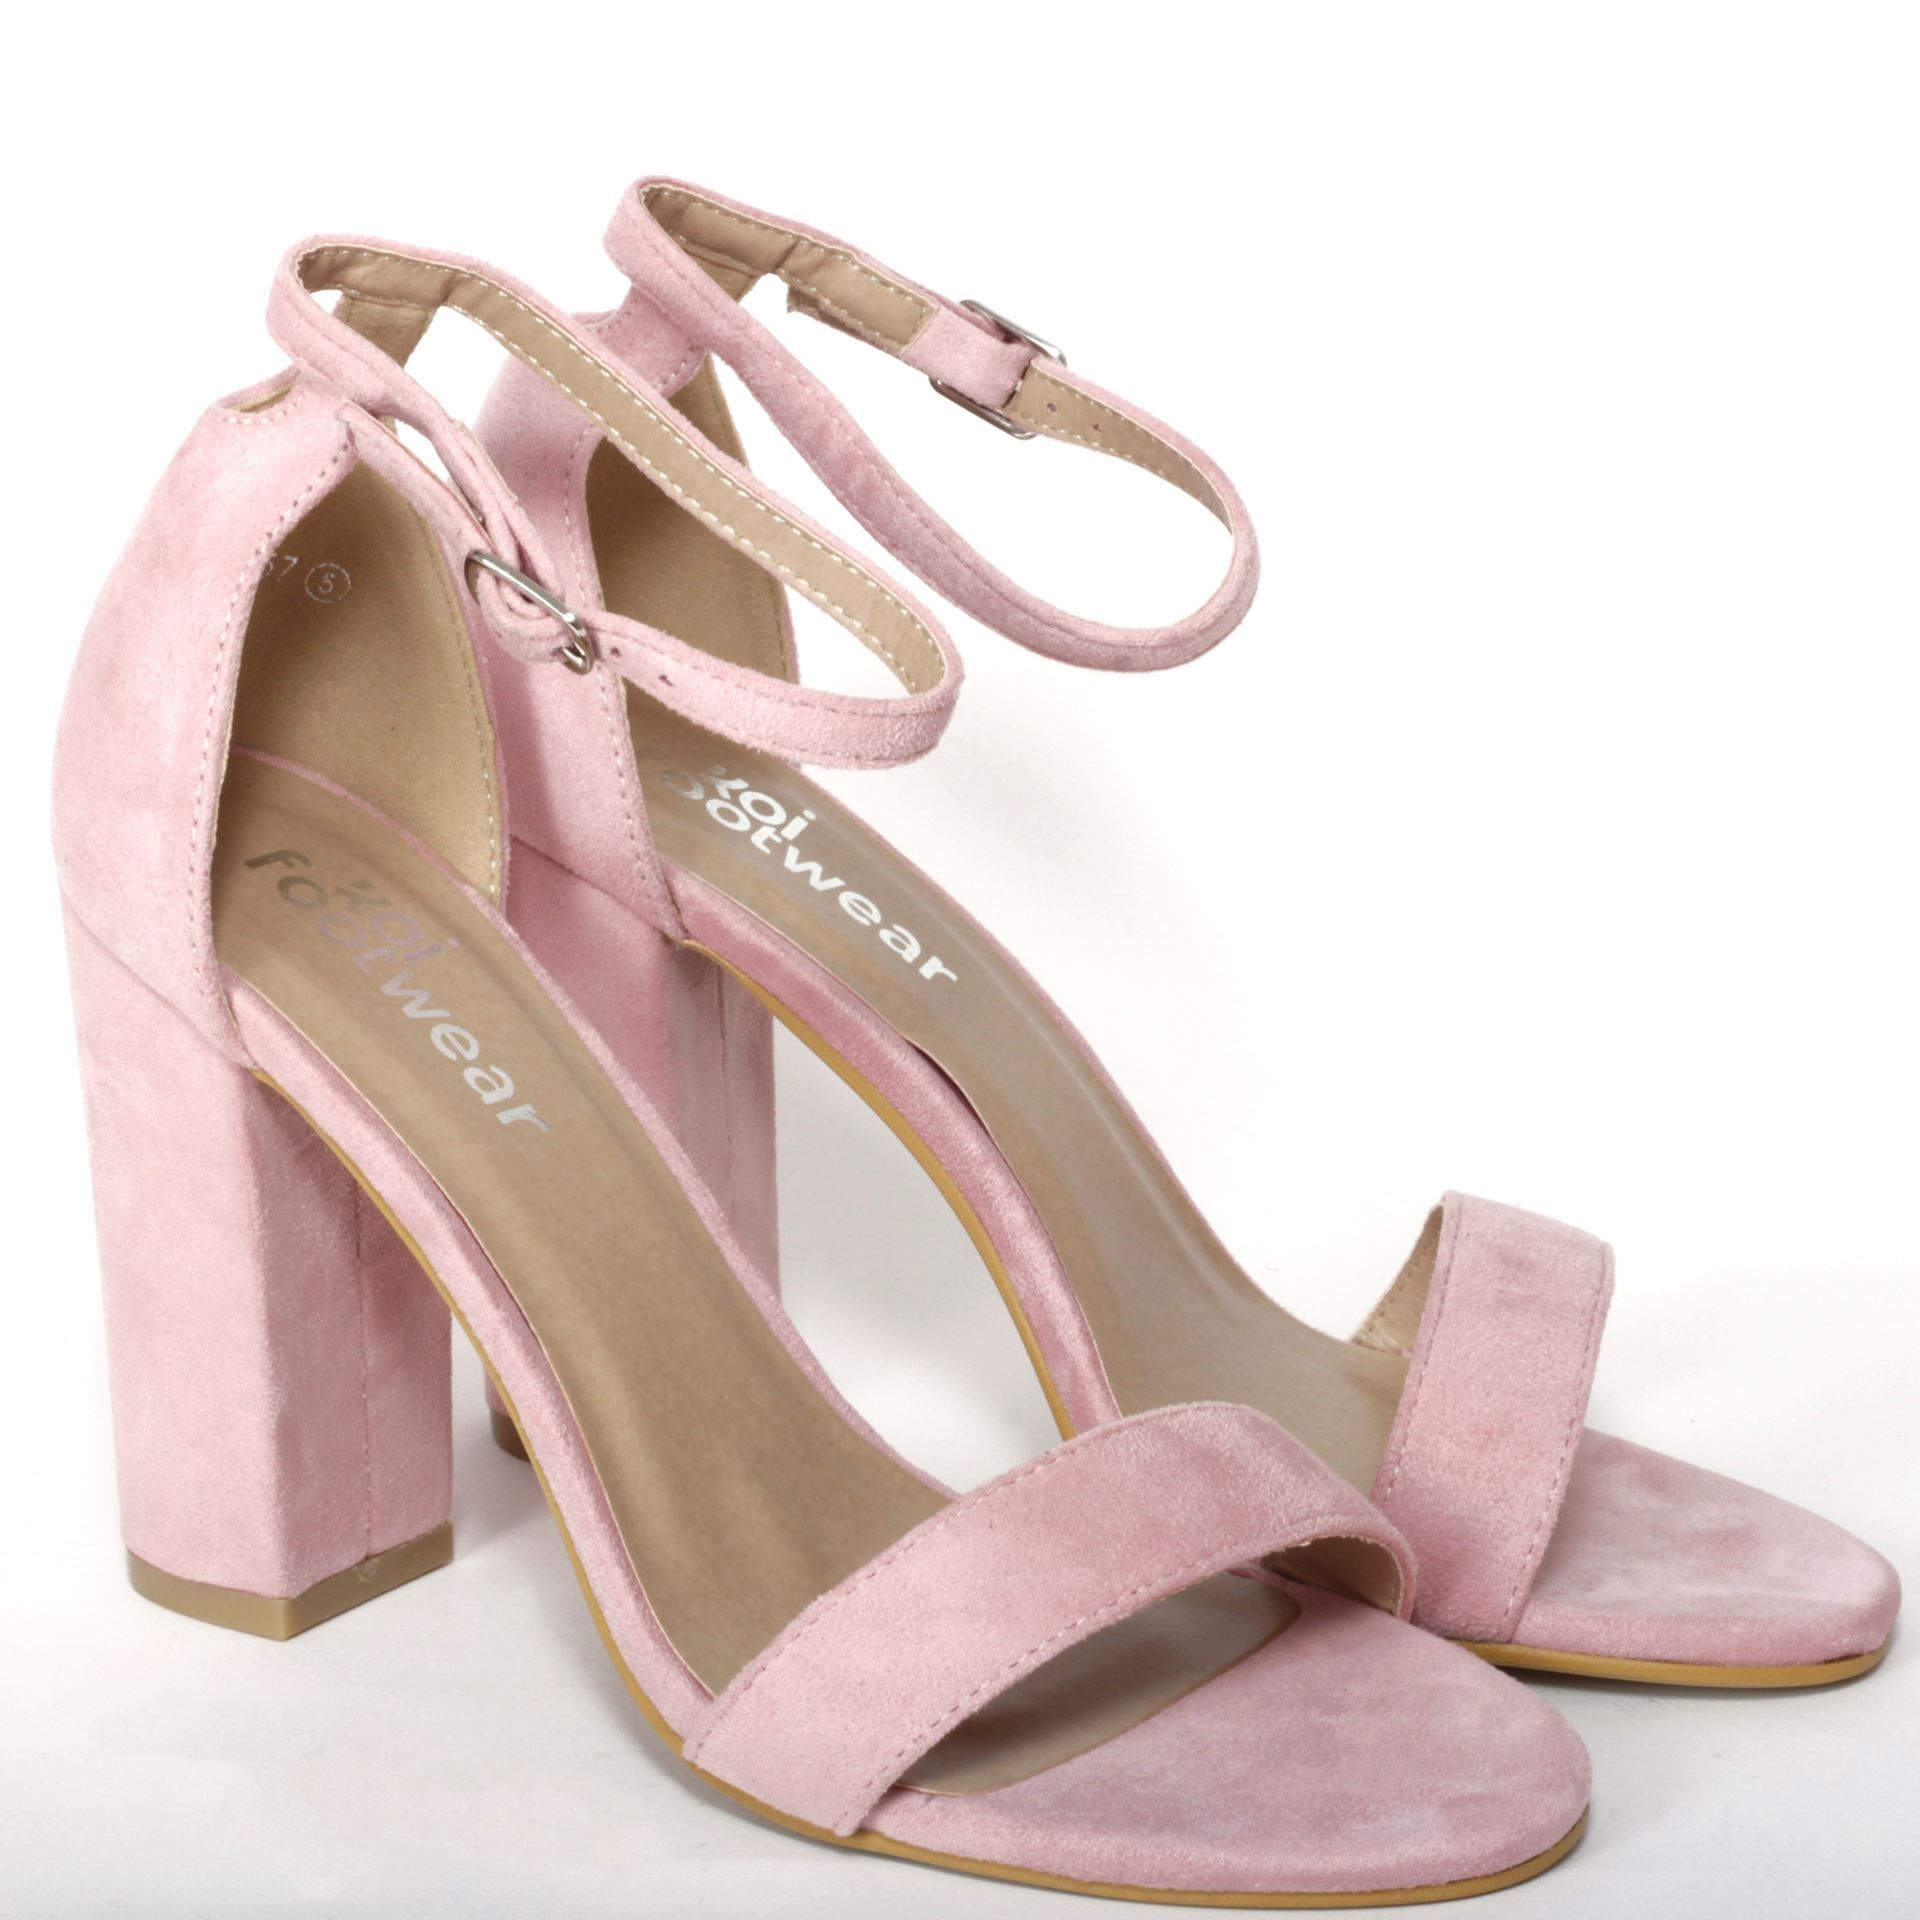 8ae2430cd38f Korkys Korky s pink heels - pair with a white flowy dress or some denim mom  jeans